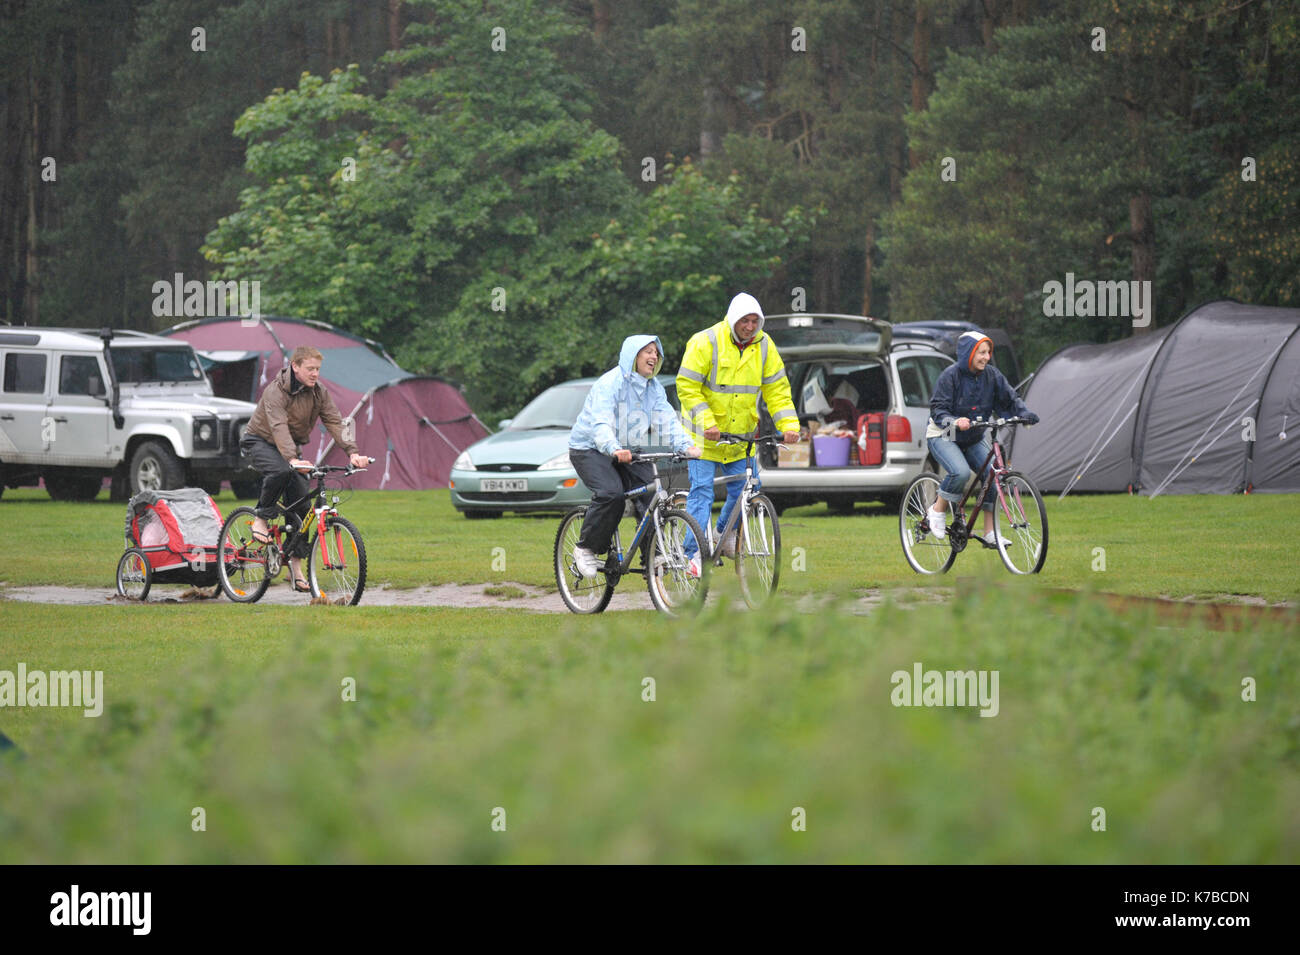 family cycling in the rain on camping holiday - Stock Image